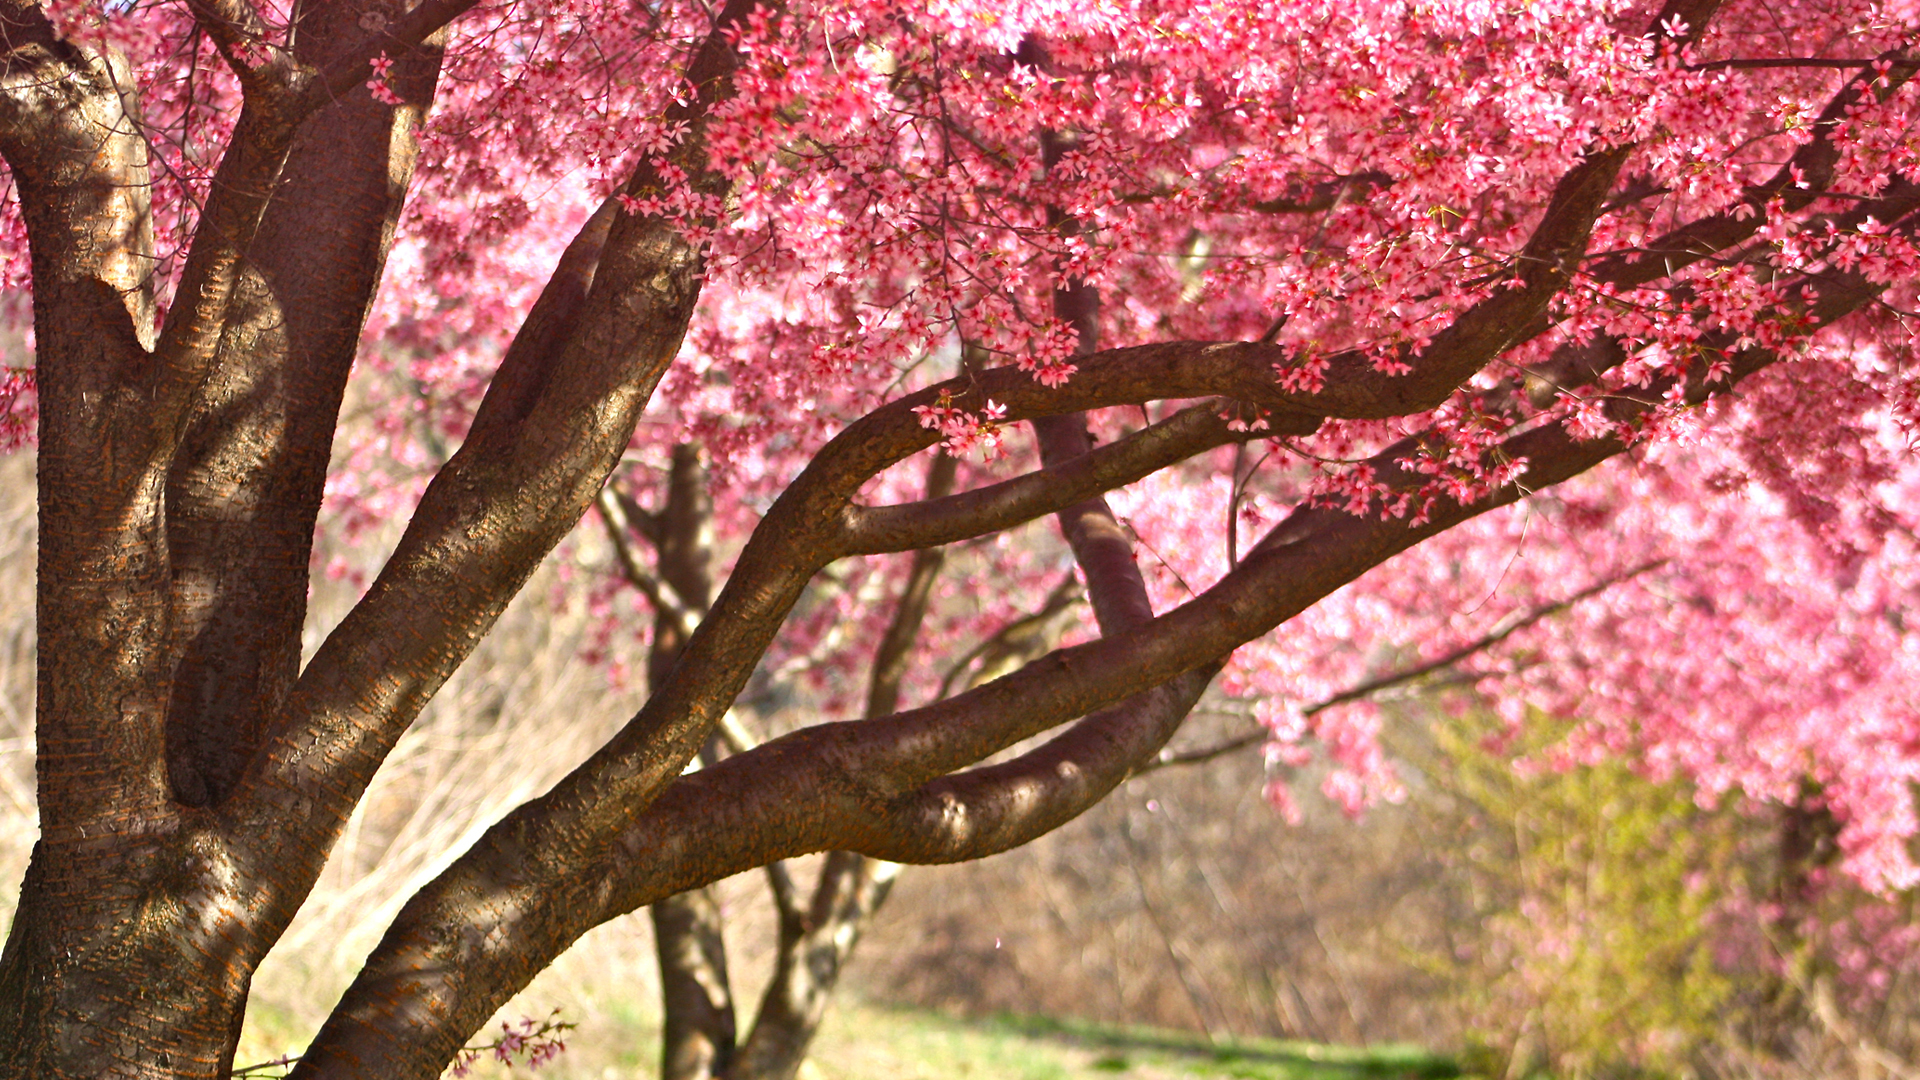 Falling Cherry Blossom Wallpaper Hd High Resolution Nature Pictures With Pink Colored Cherry